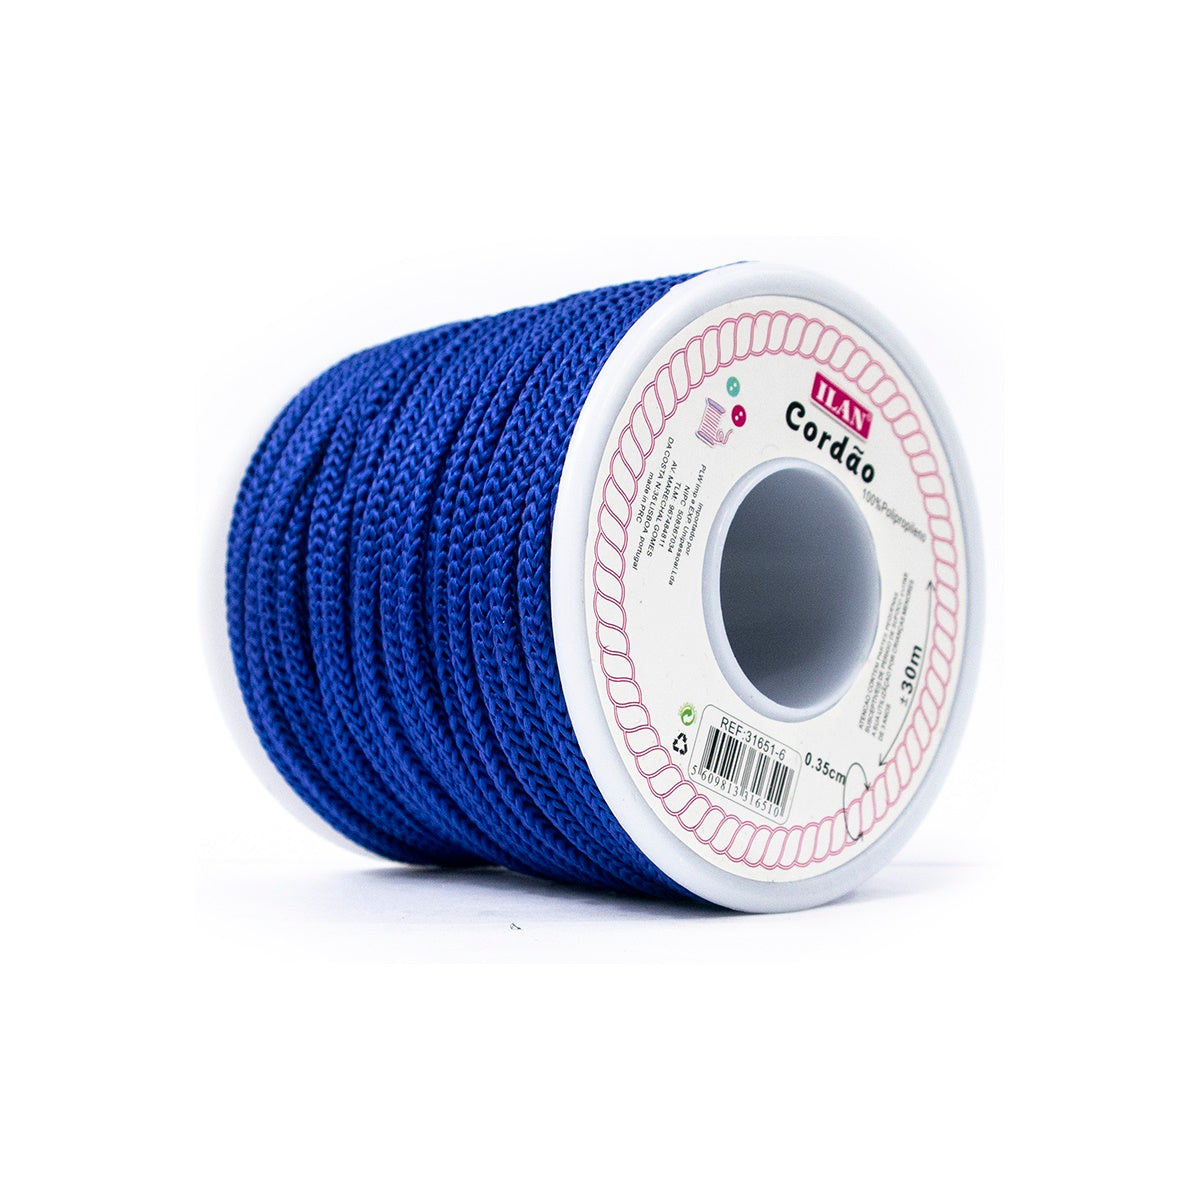 Macrame Cord 3.5mm Royal Blue